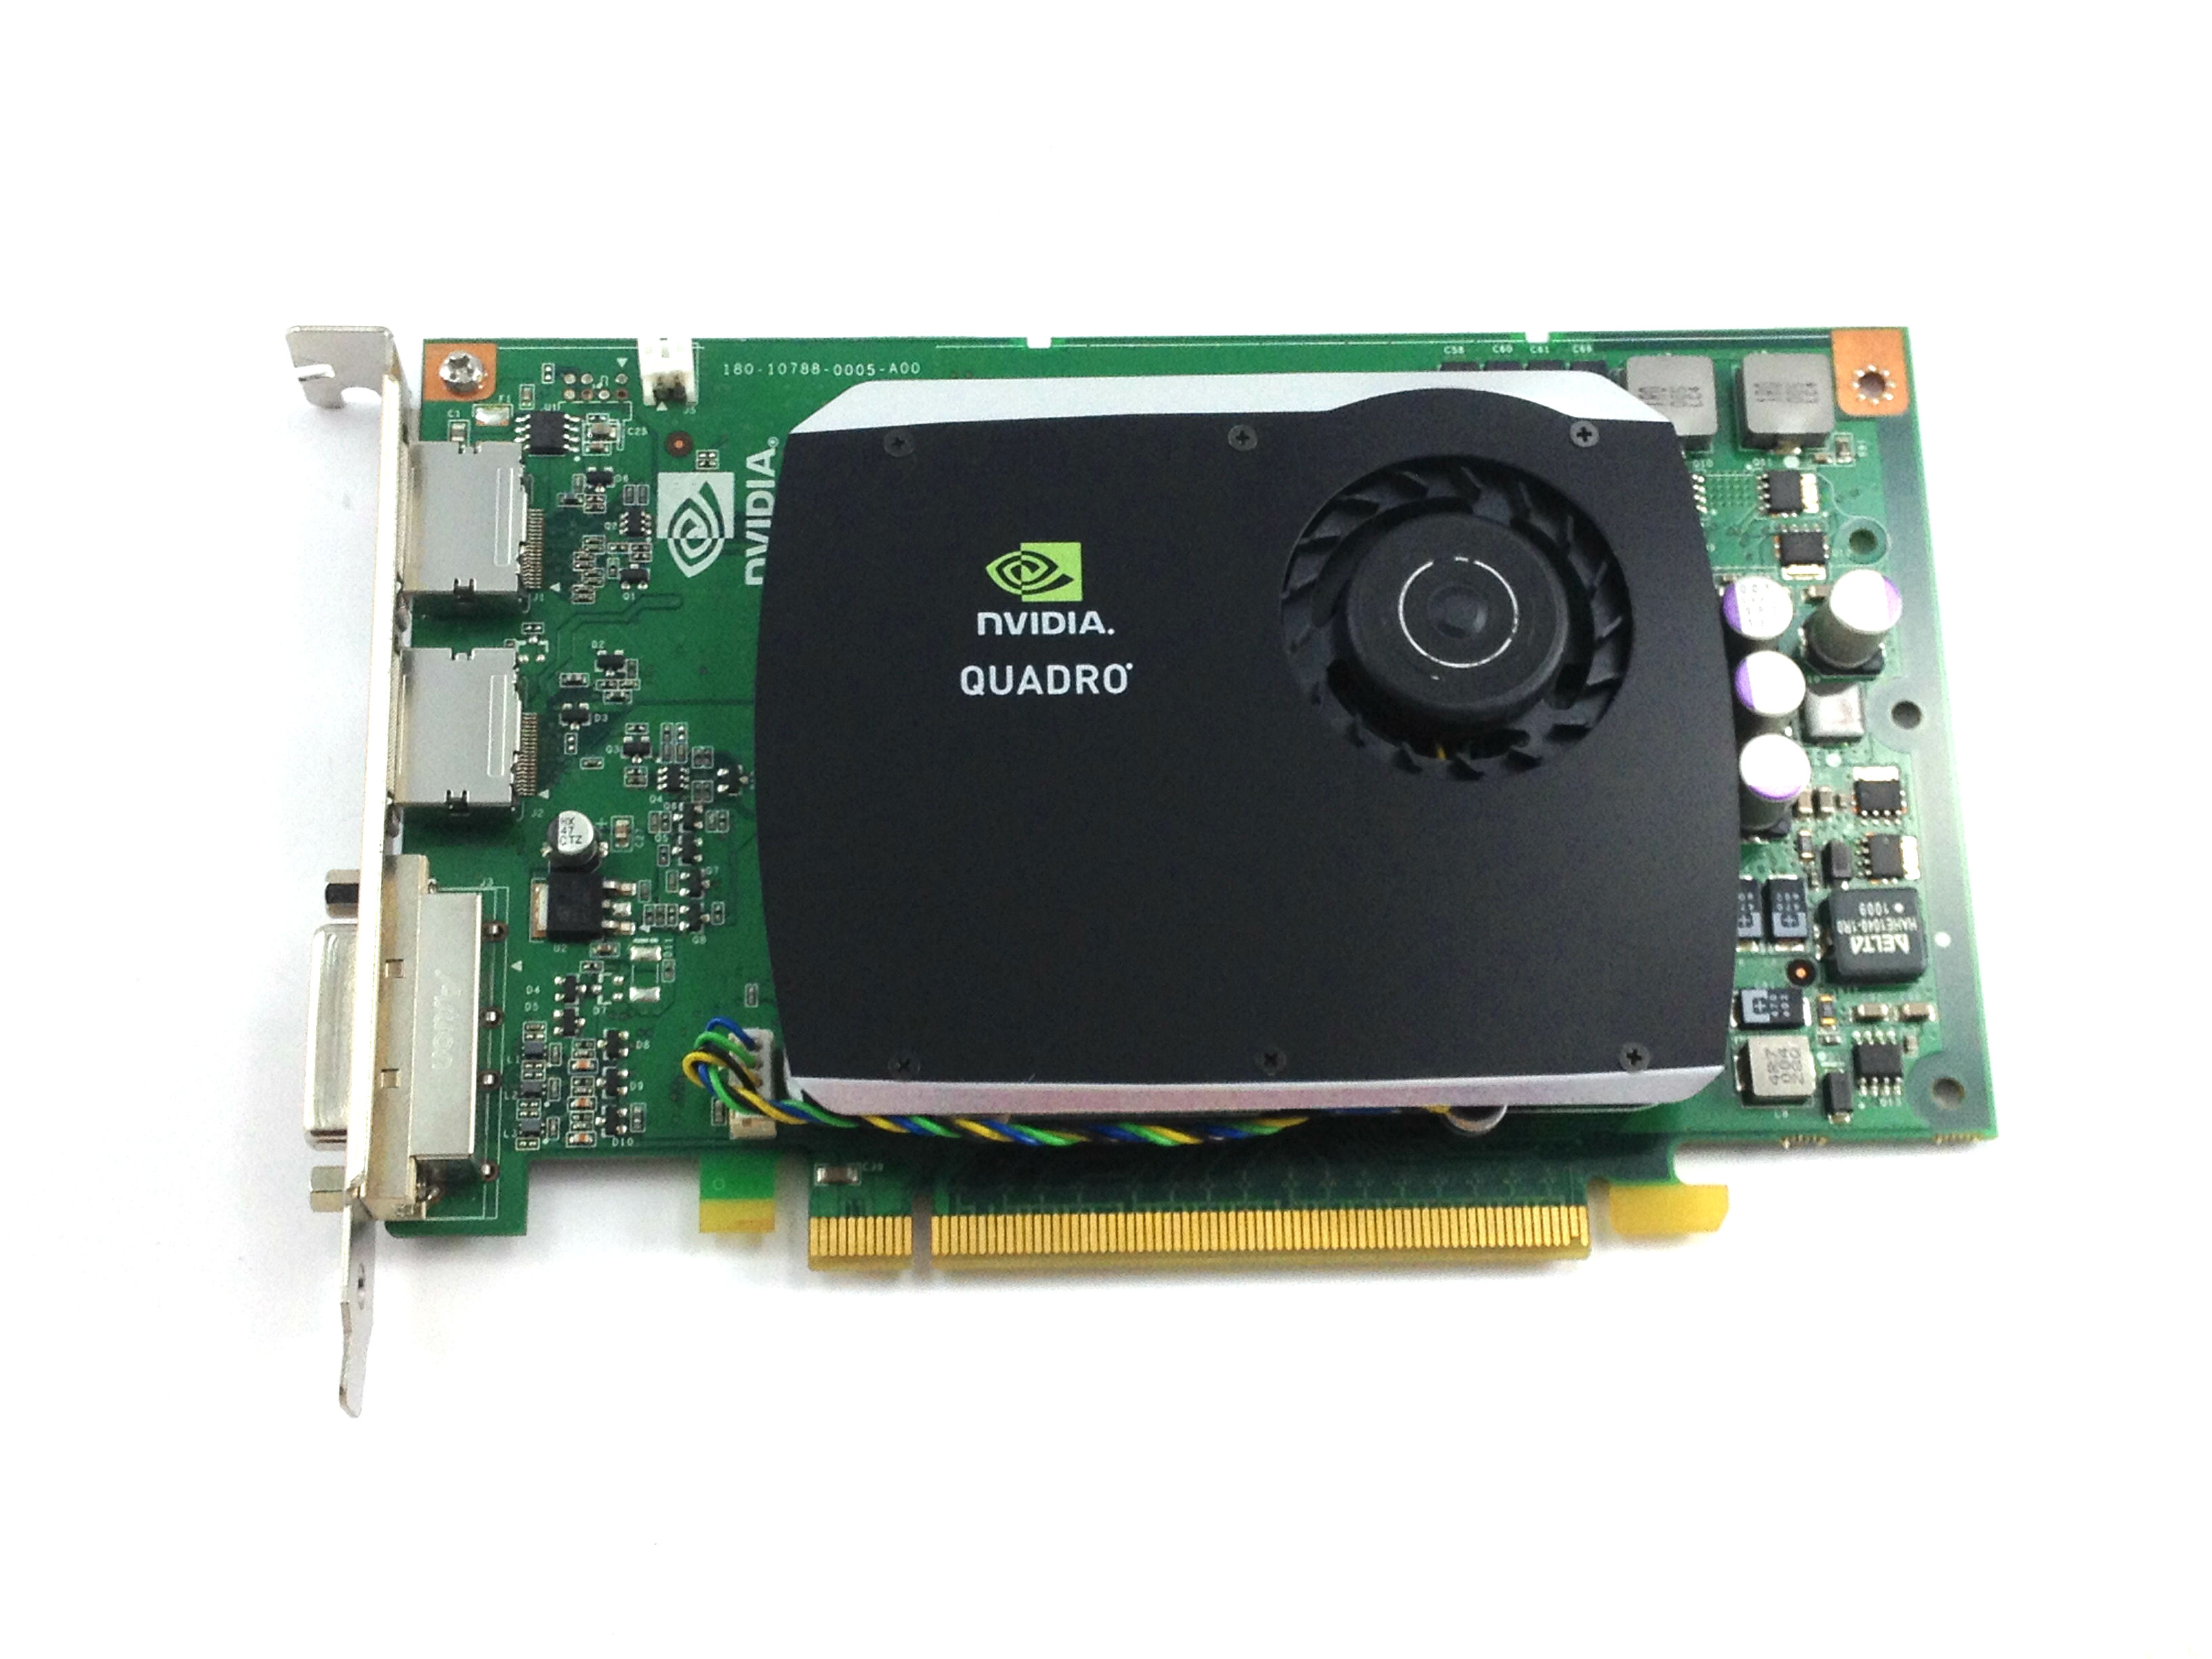 Dell Nvidia Quadro FX 580 512MB DVI Dual Port PCI-E Video Card (R784K)